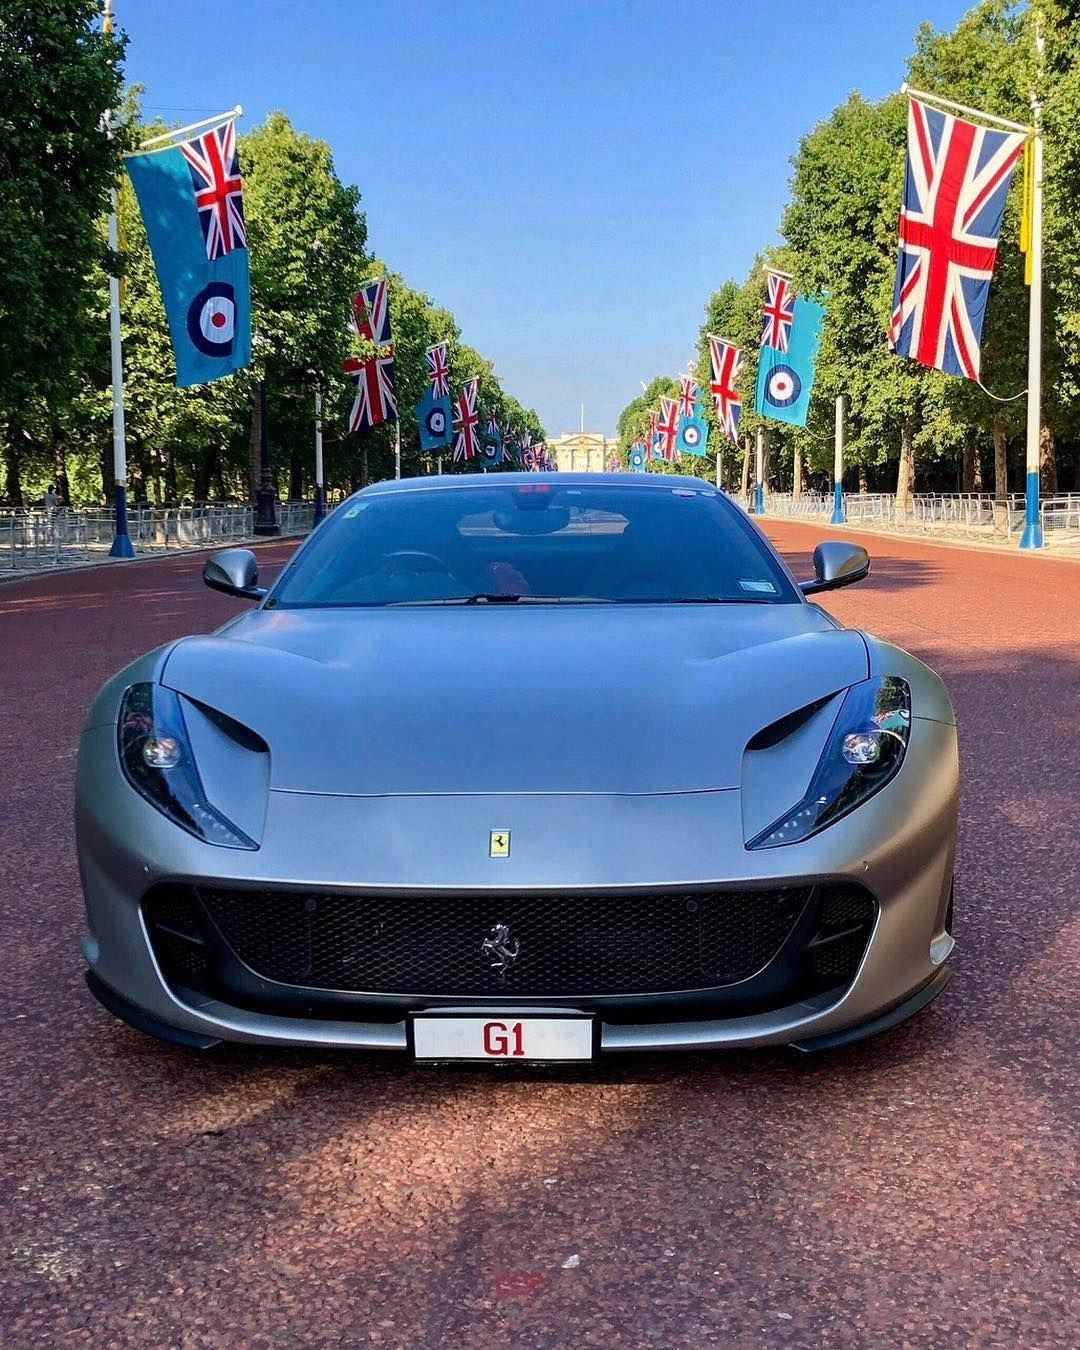 Grantkbaker S 812 Superfast At The Mall In London Would You Ship Your 812 All The Way From New Zealand To The United Kingdom Cool Sports Cars Ferrari